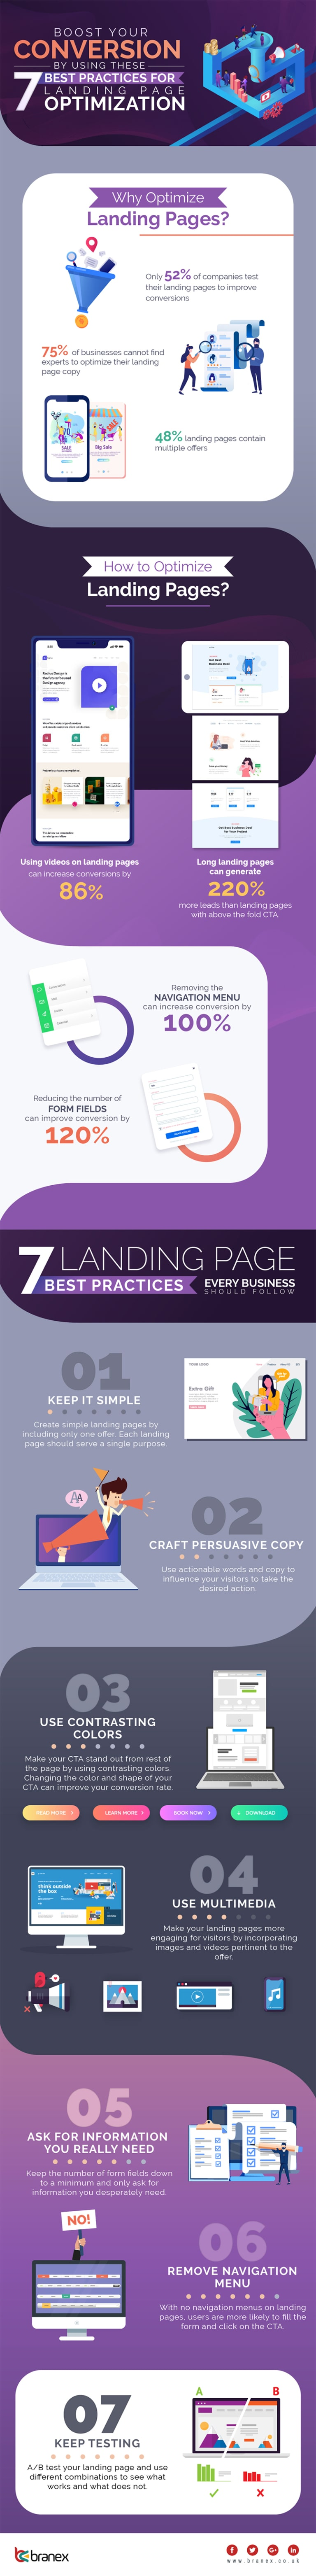 7 landing page design tips to improve your website conversion rate - Infographic